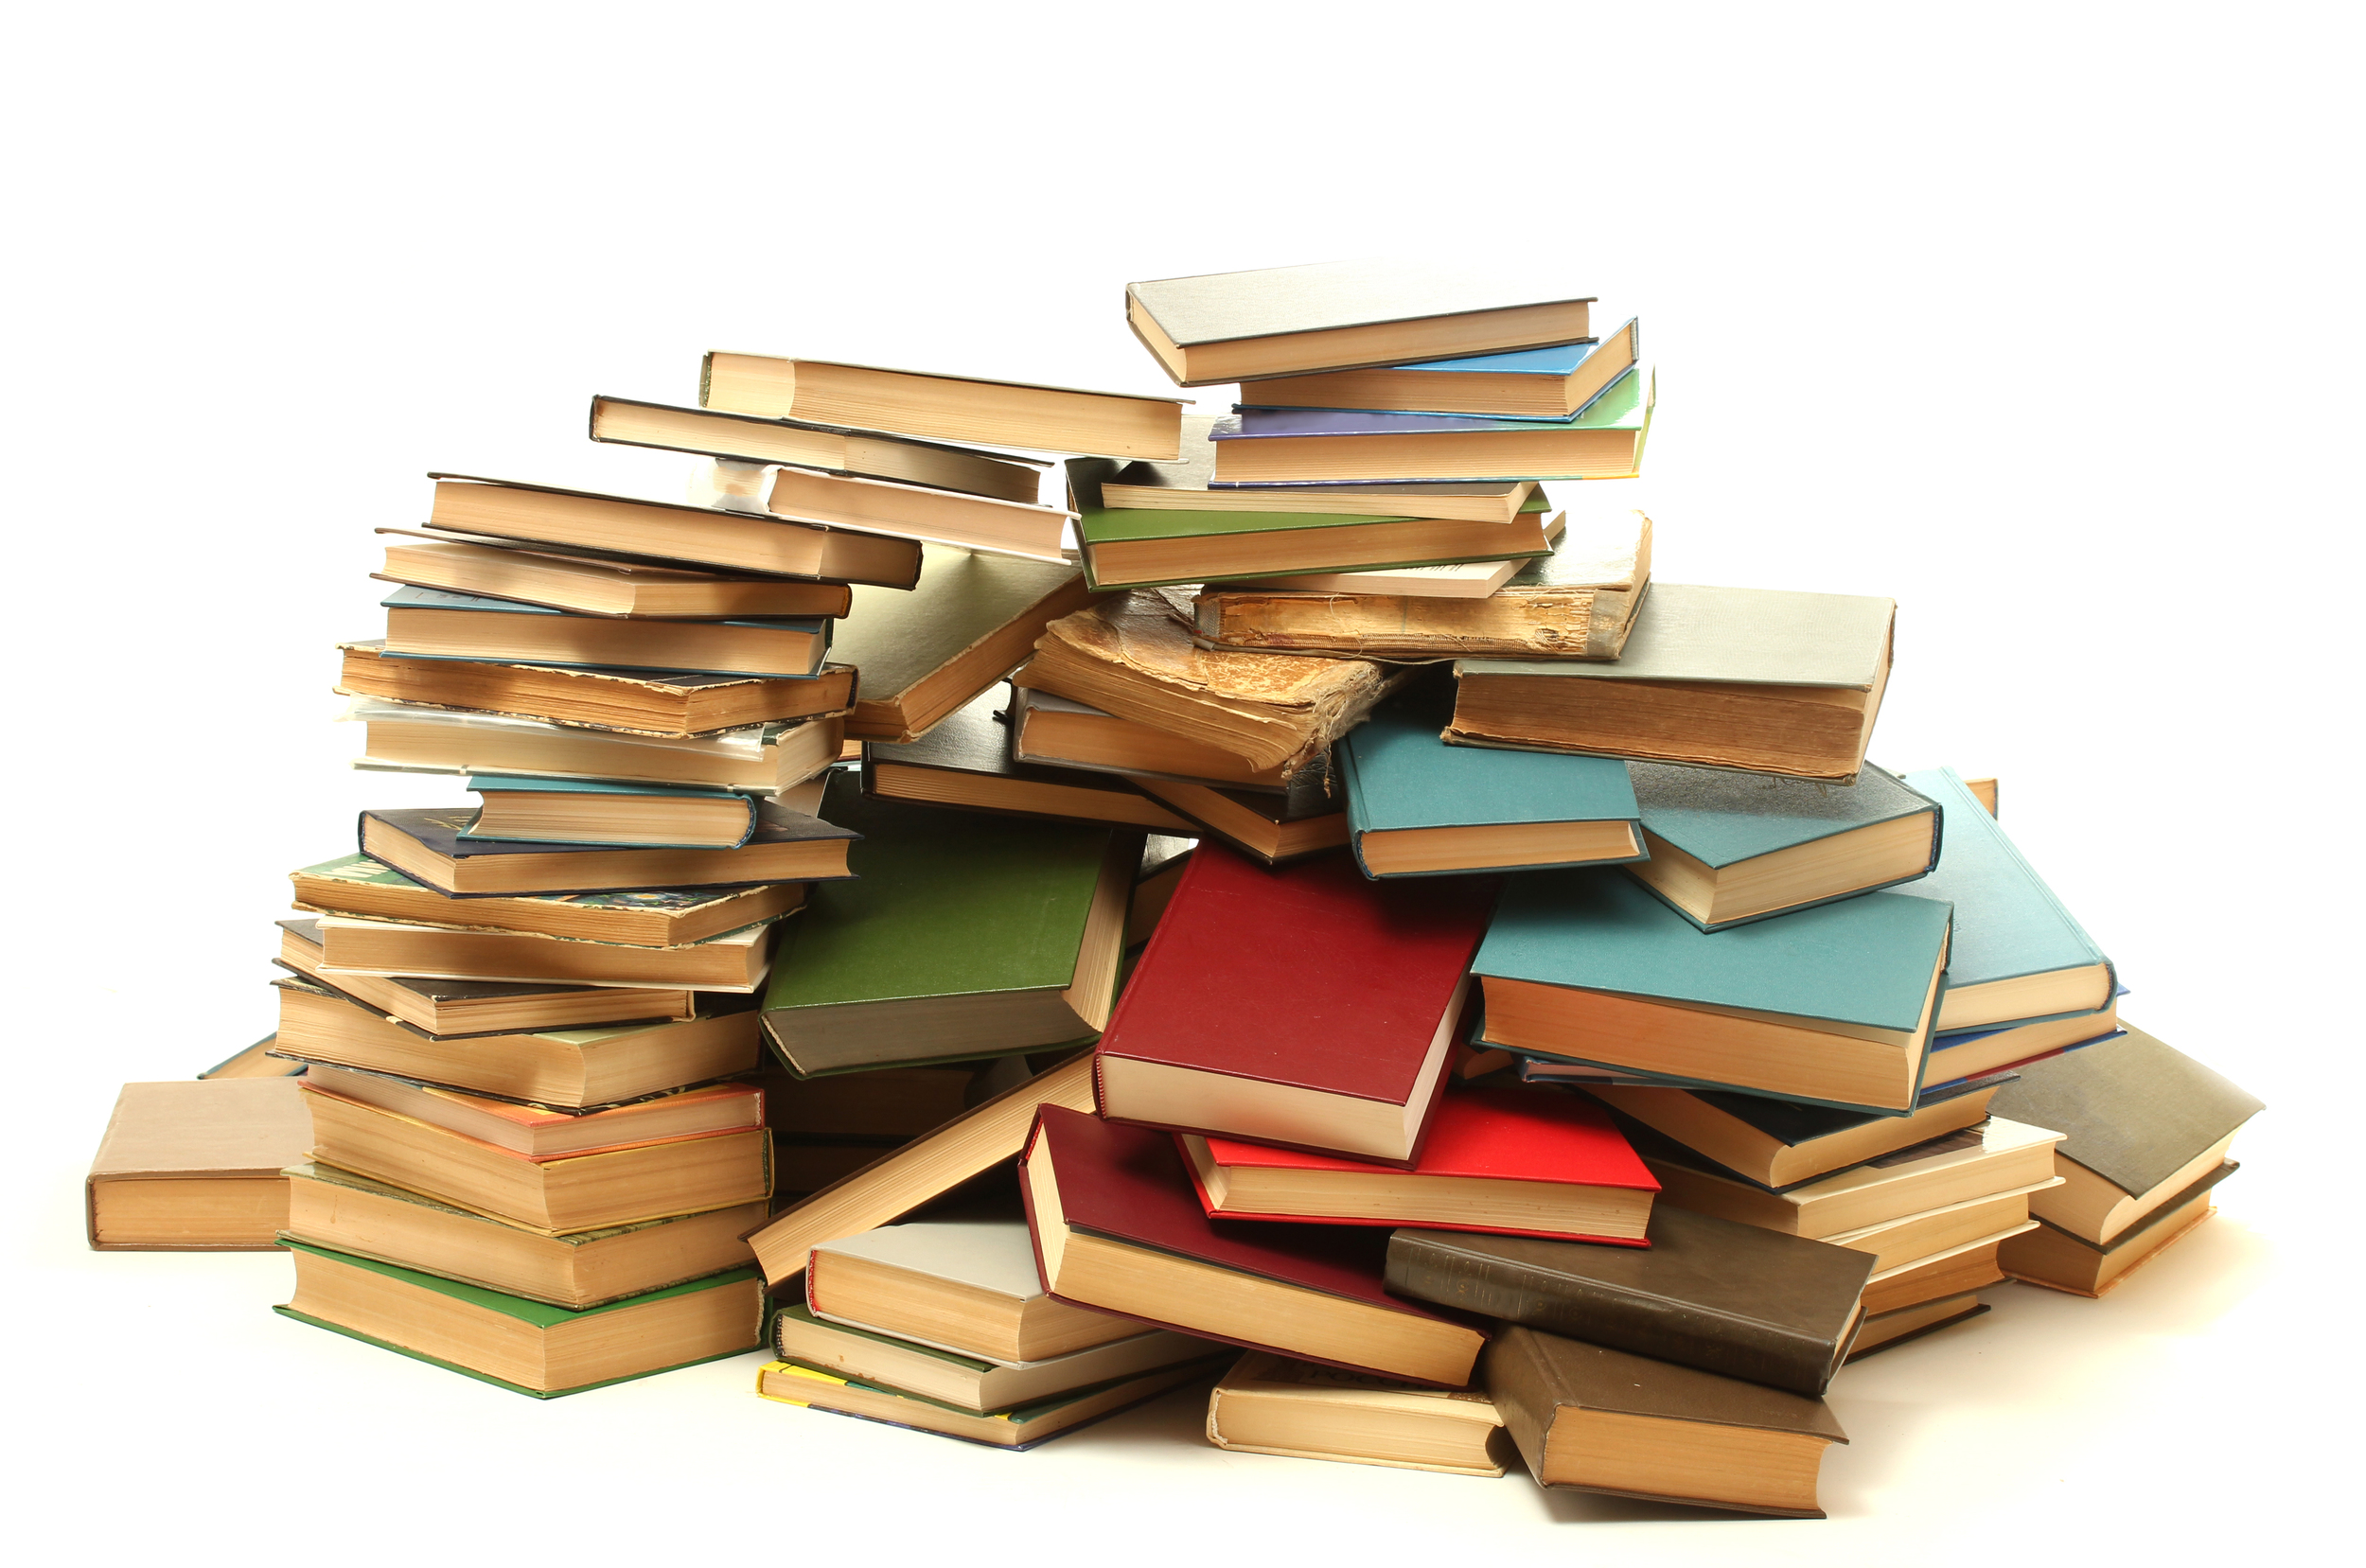 Total of 48 items (books, journals, magazines) read - 4,939 pages